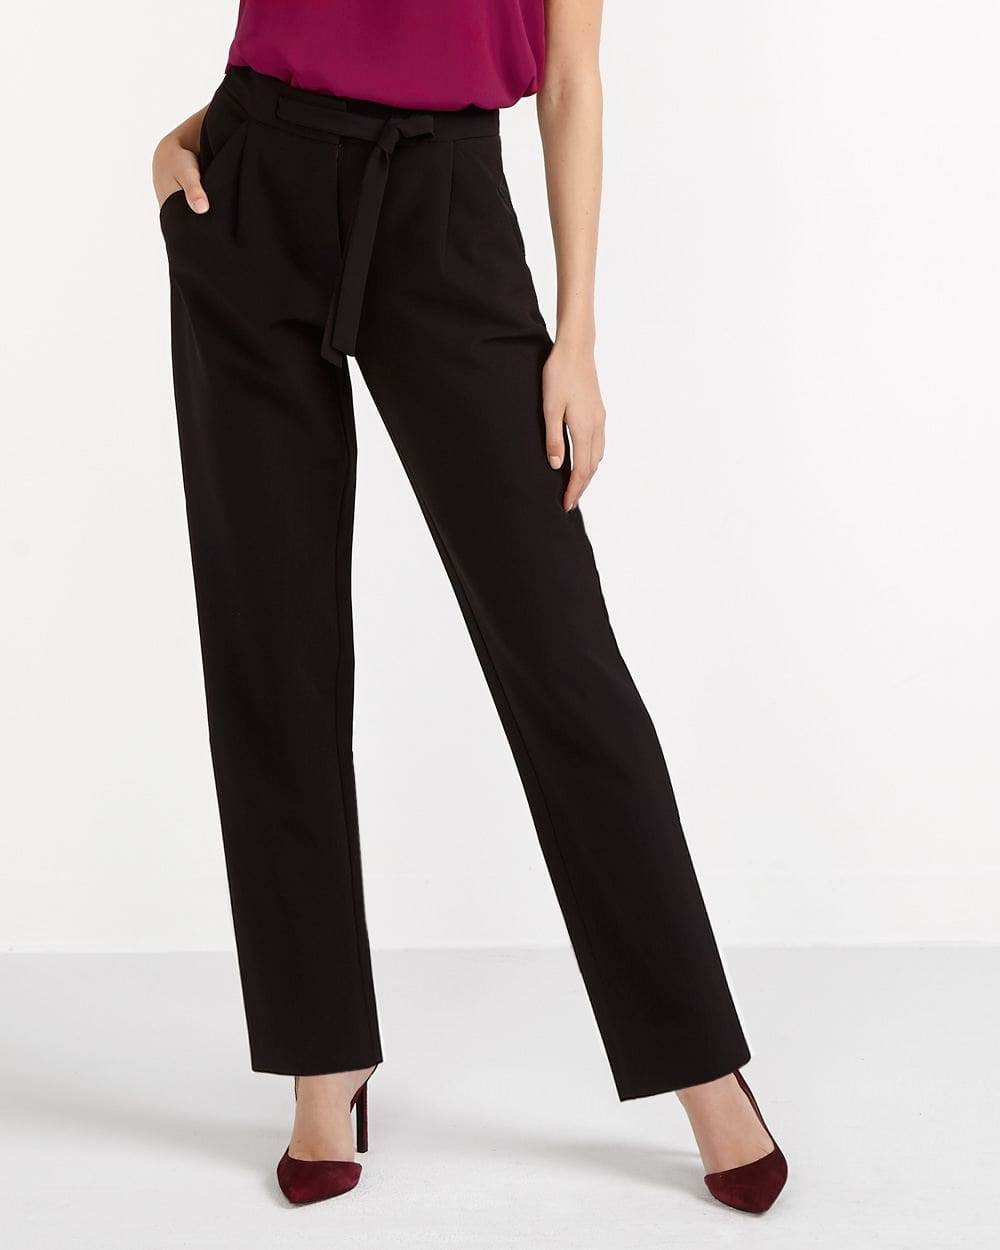 Willow & Thread Solid Tapered Pants